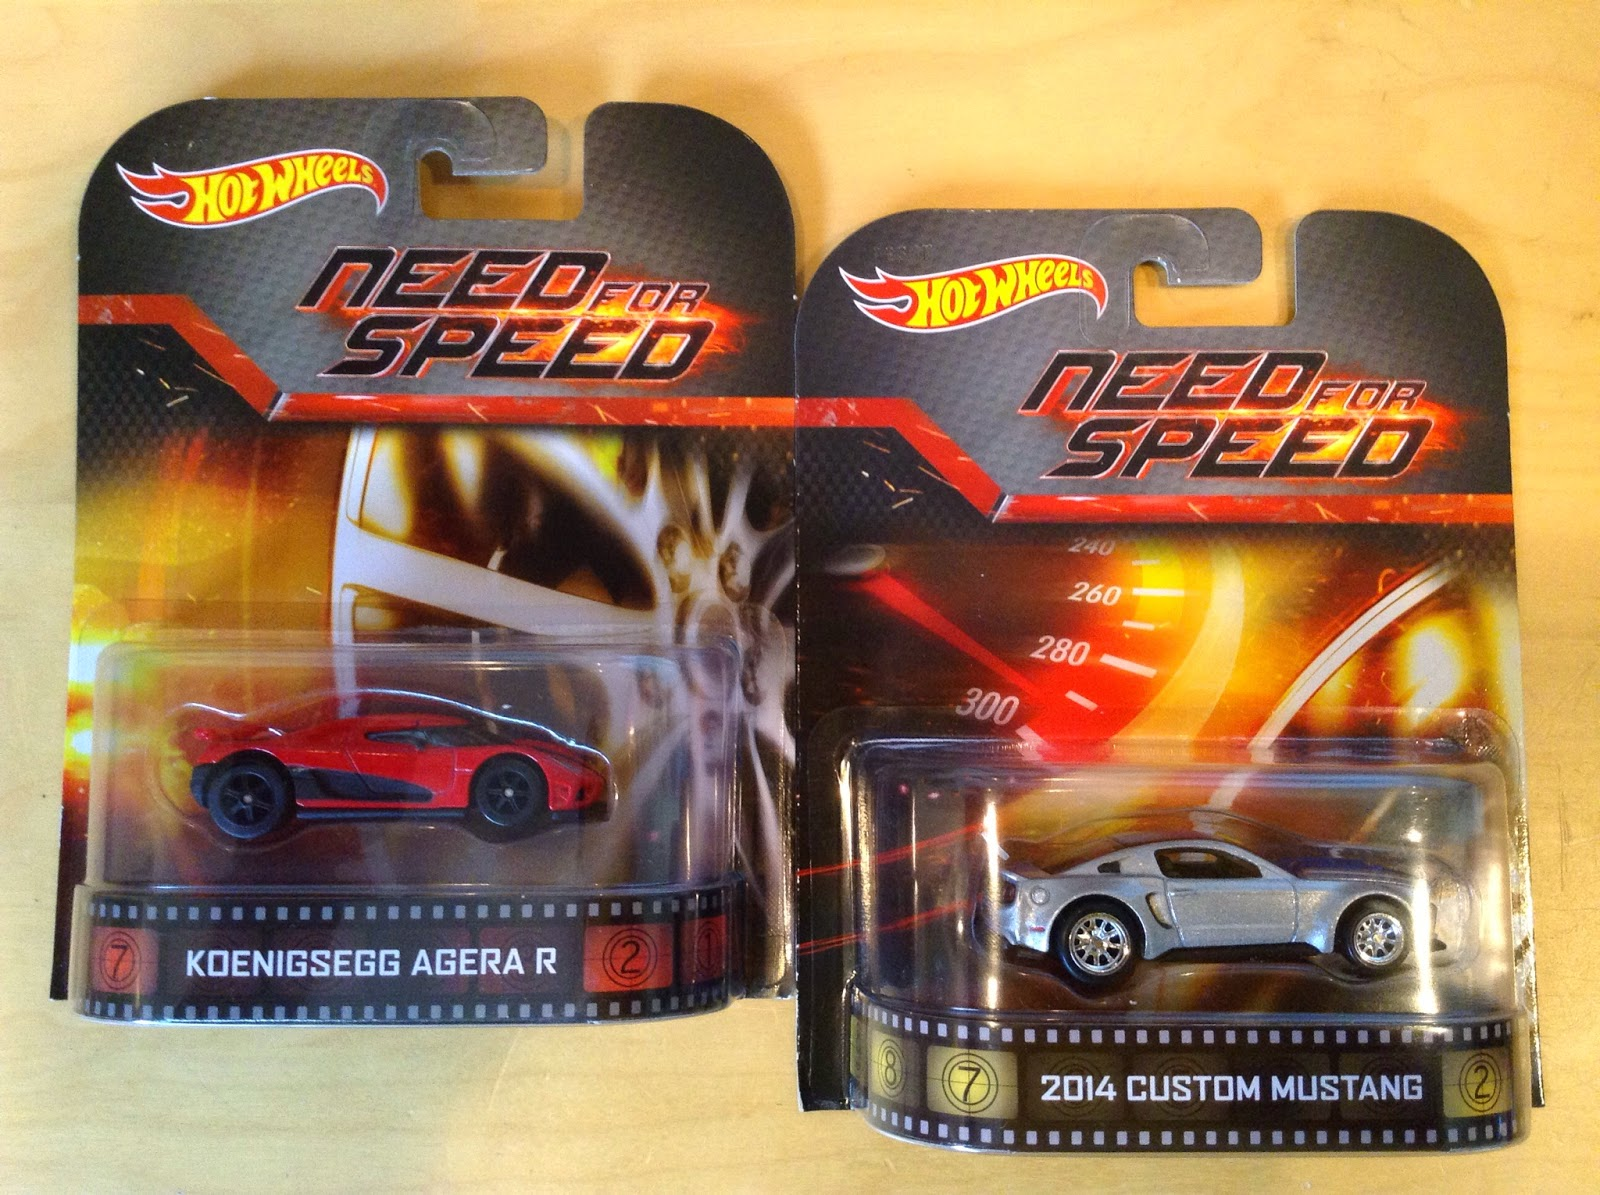 Movie Need For Speed And They Were Included In The Hot Wheels Retro Entertainment Series Both Cars Are Detailed More Than Usual